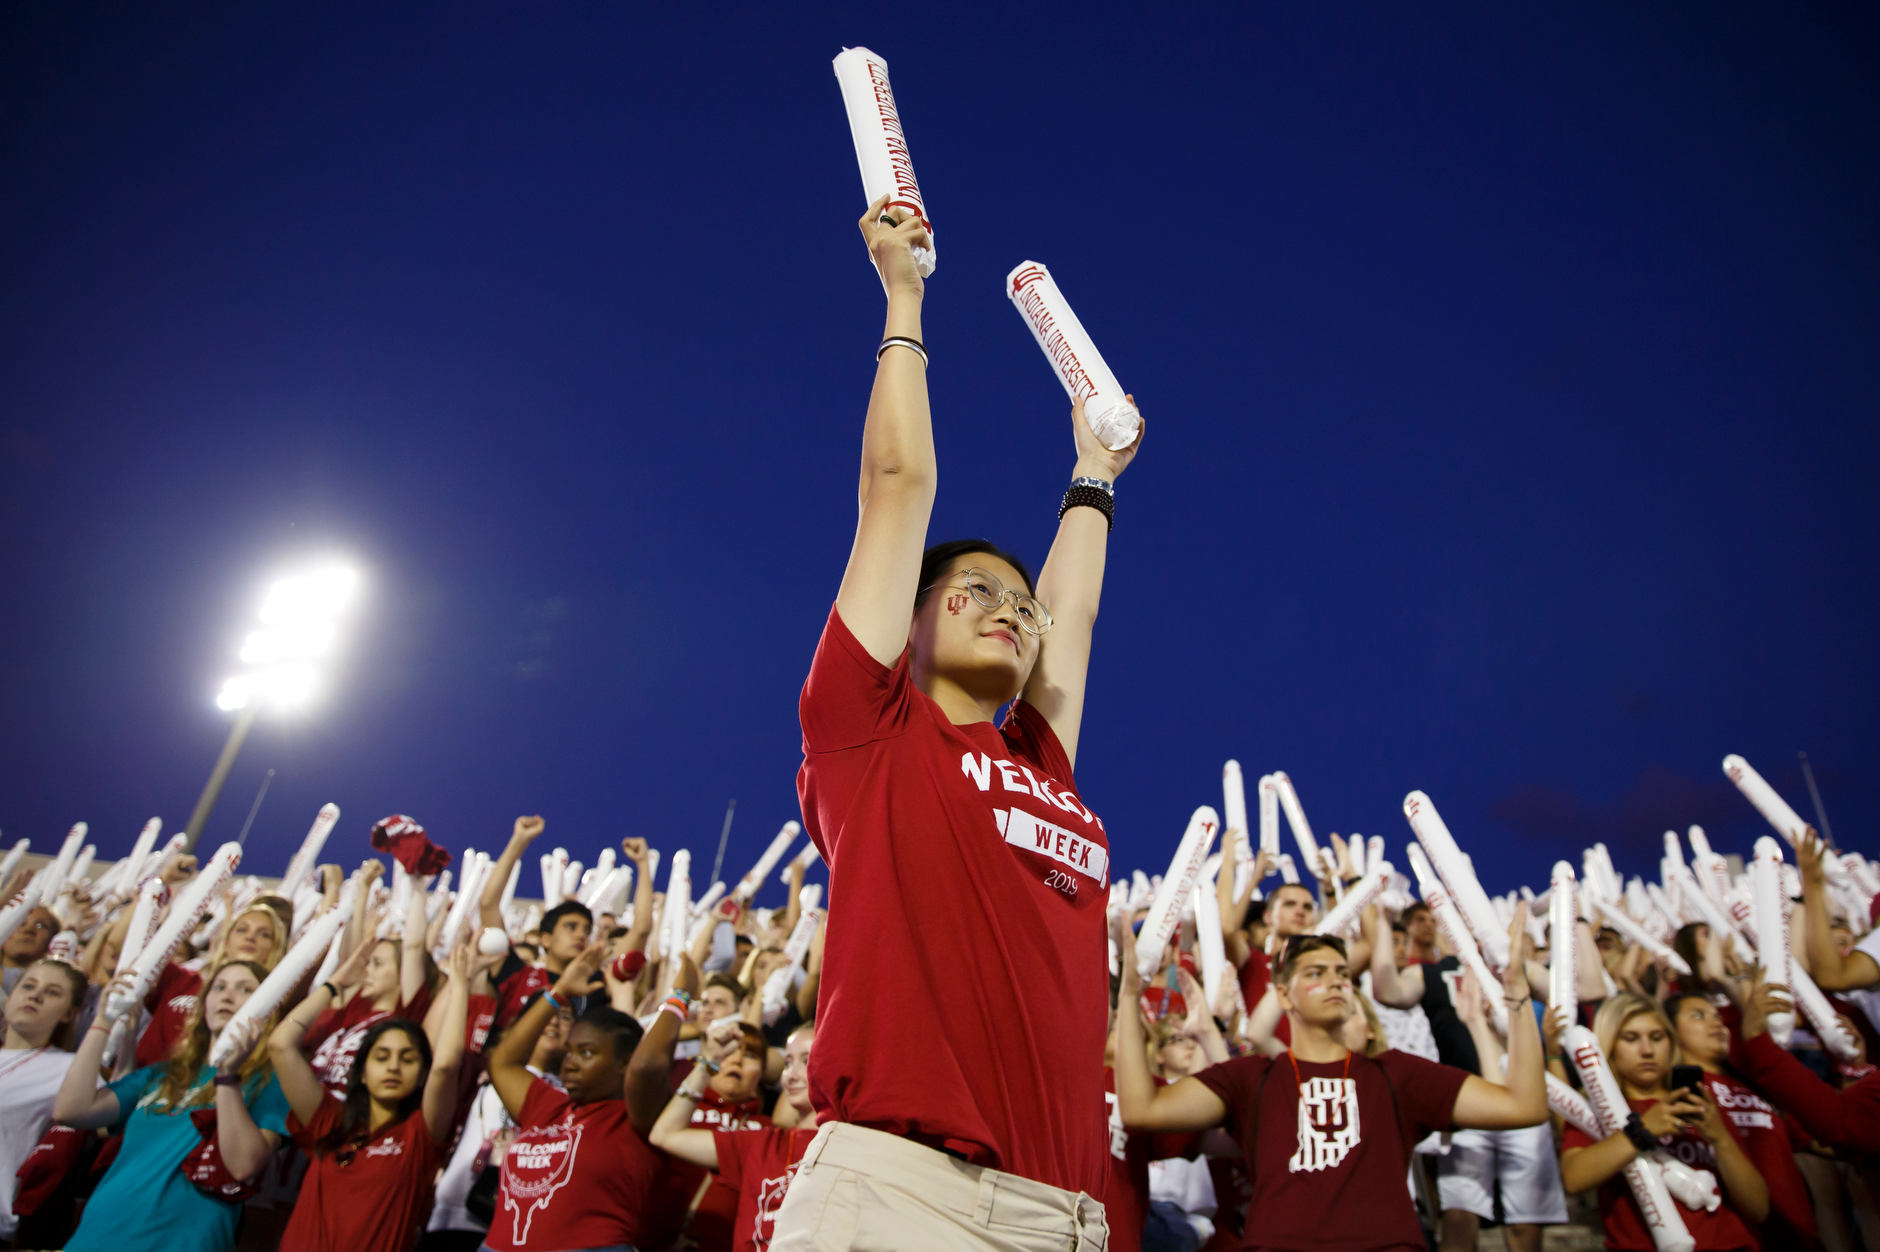 Indiana University Orientation Team member Kindjal Yu pumps up the crowd during the Traditions and Spirit of IU at Memorial Stadium on Friday, Aug. 23, 2019. (James Brosher/Indiana University)